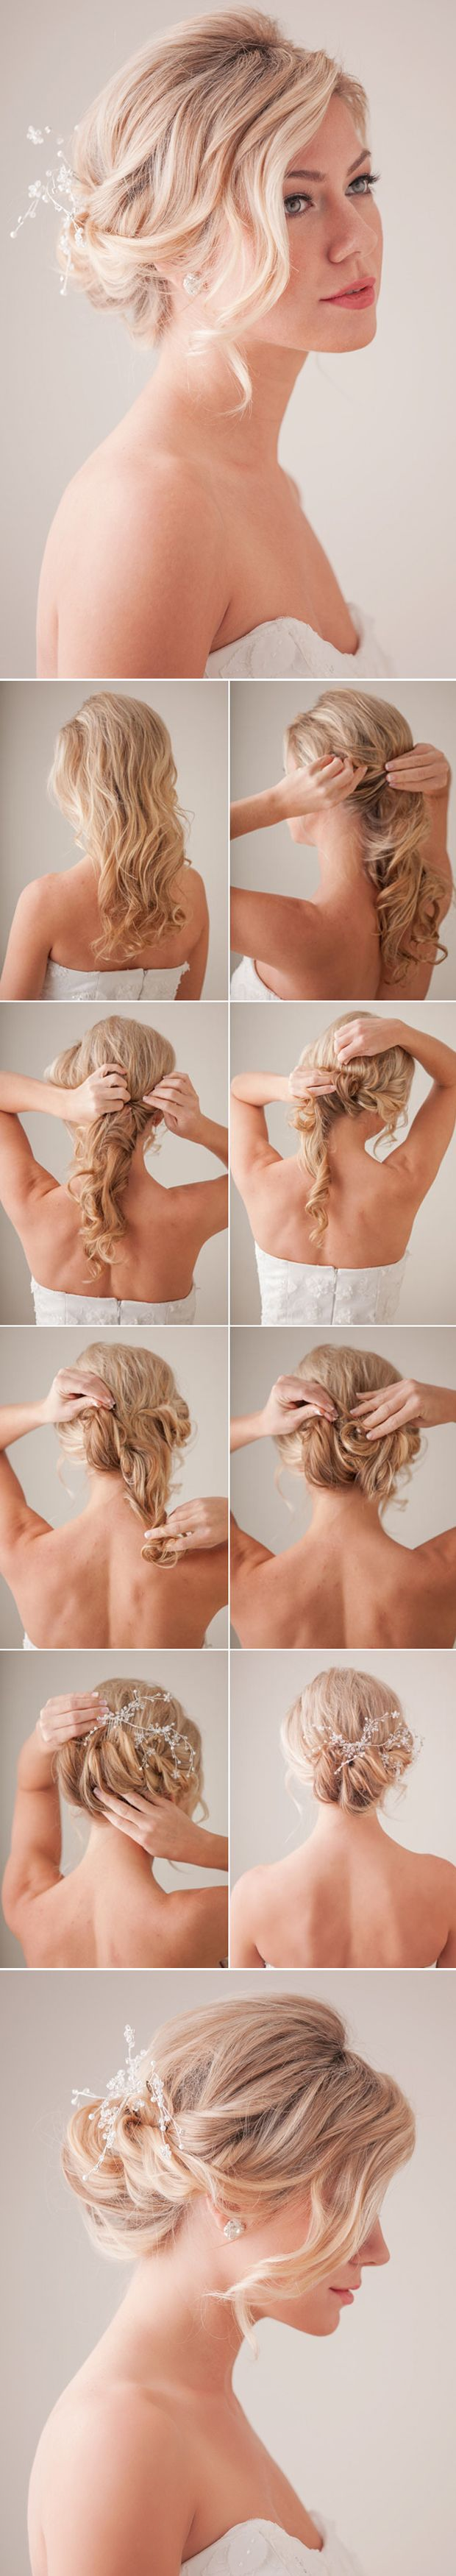 DIY curly bridal updo wedidng hairstyle